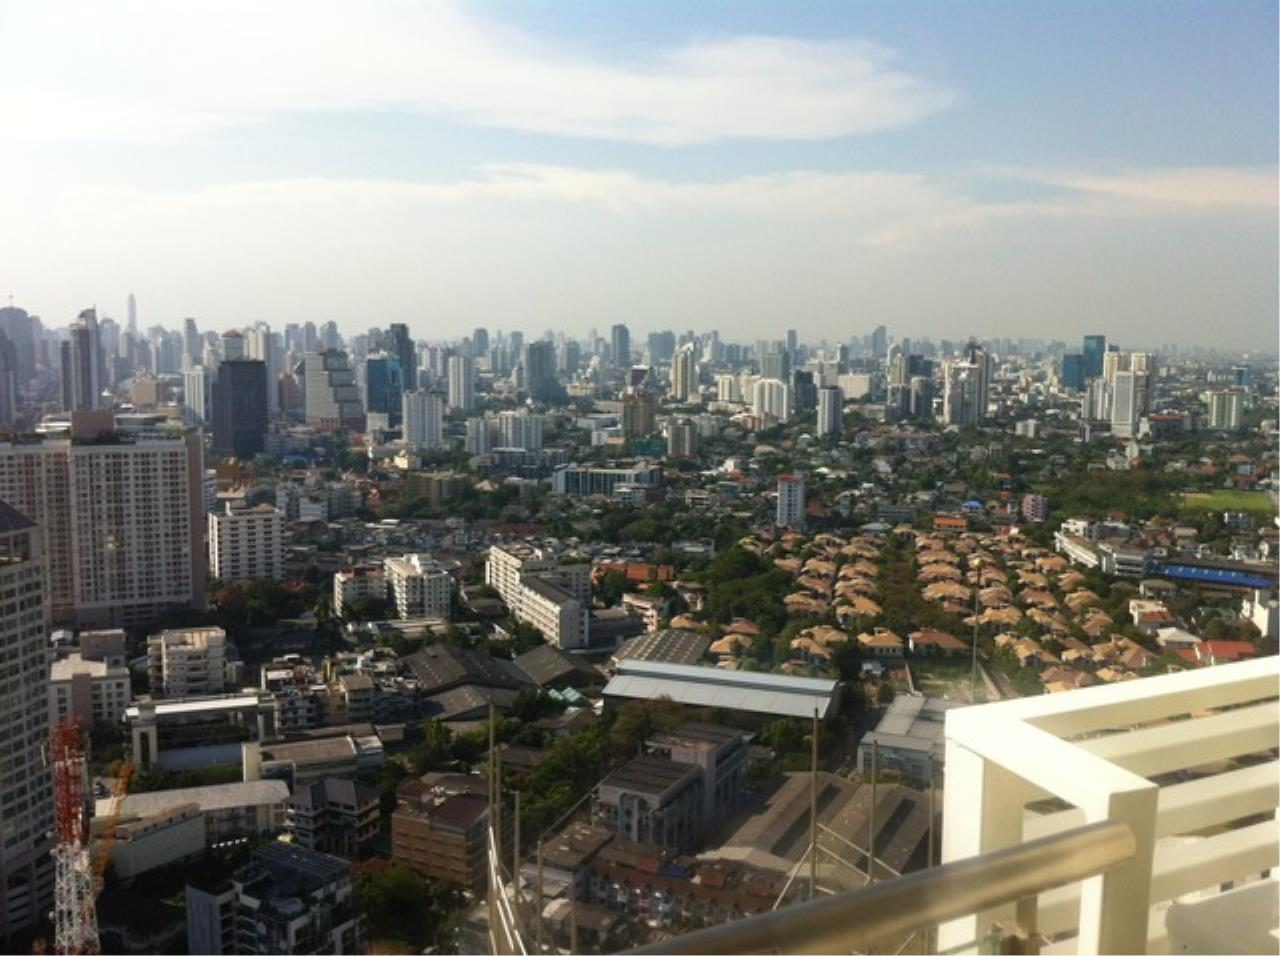 Quality Life Property Agency's Condo 1 Bedroom For Rent and For Sale  At Sky walk  35 ,  9